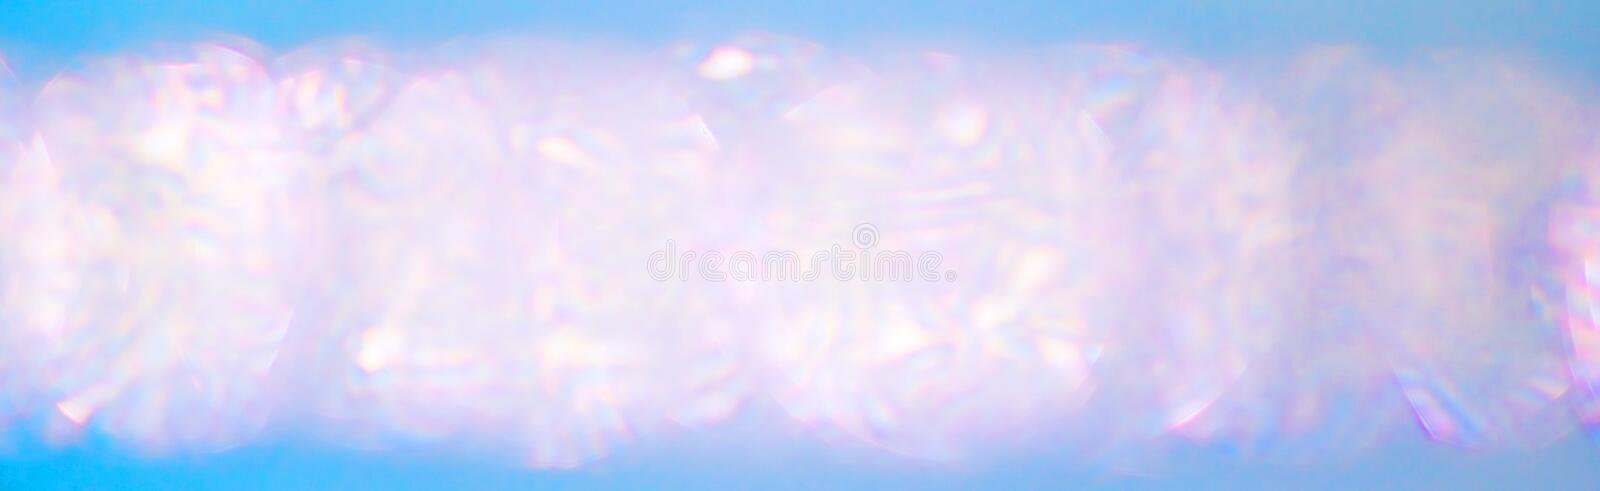 Blurred pearls. Abstract iridescent color bokeh background.  stock photo